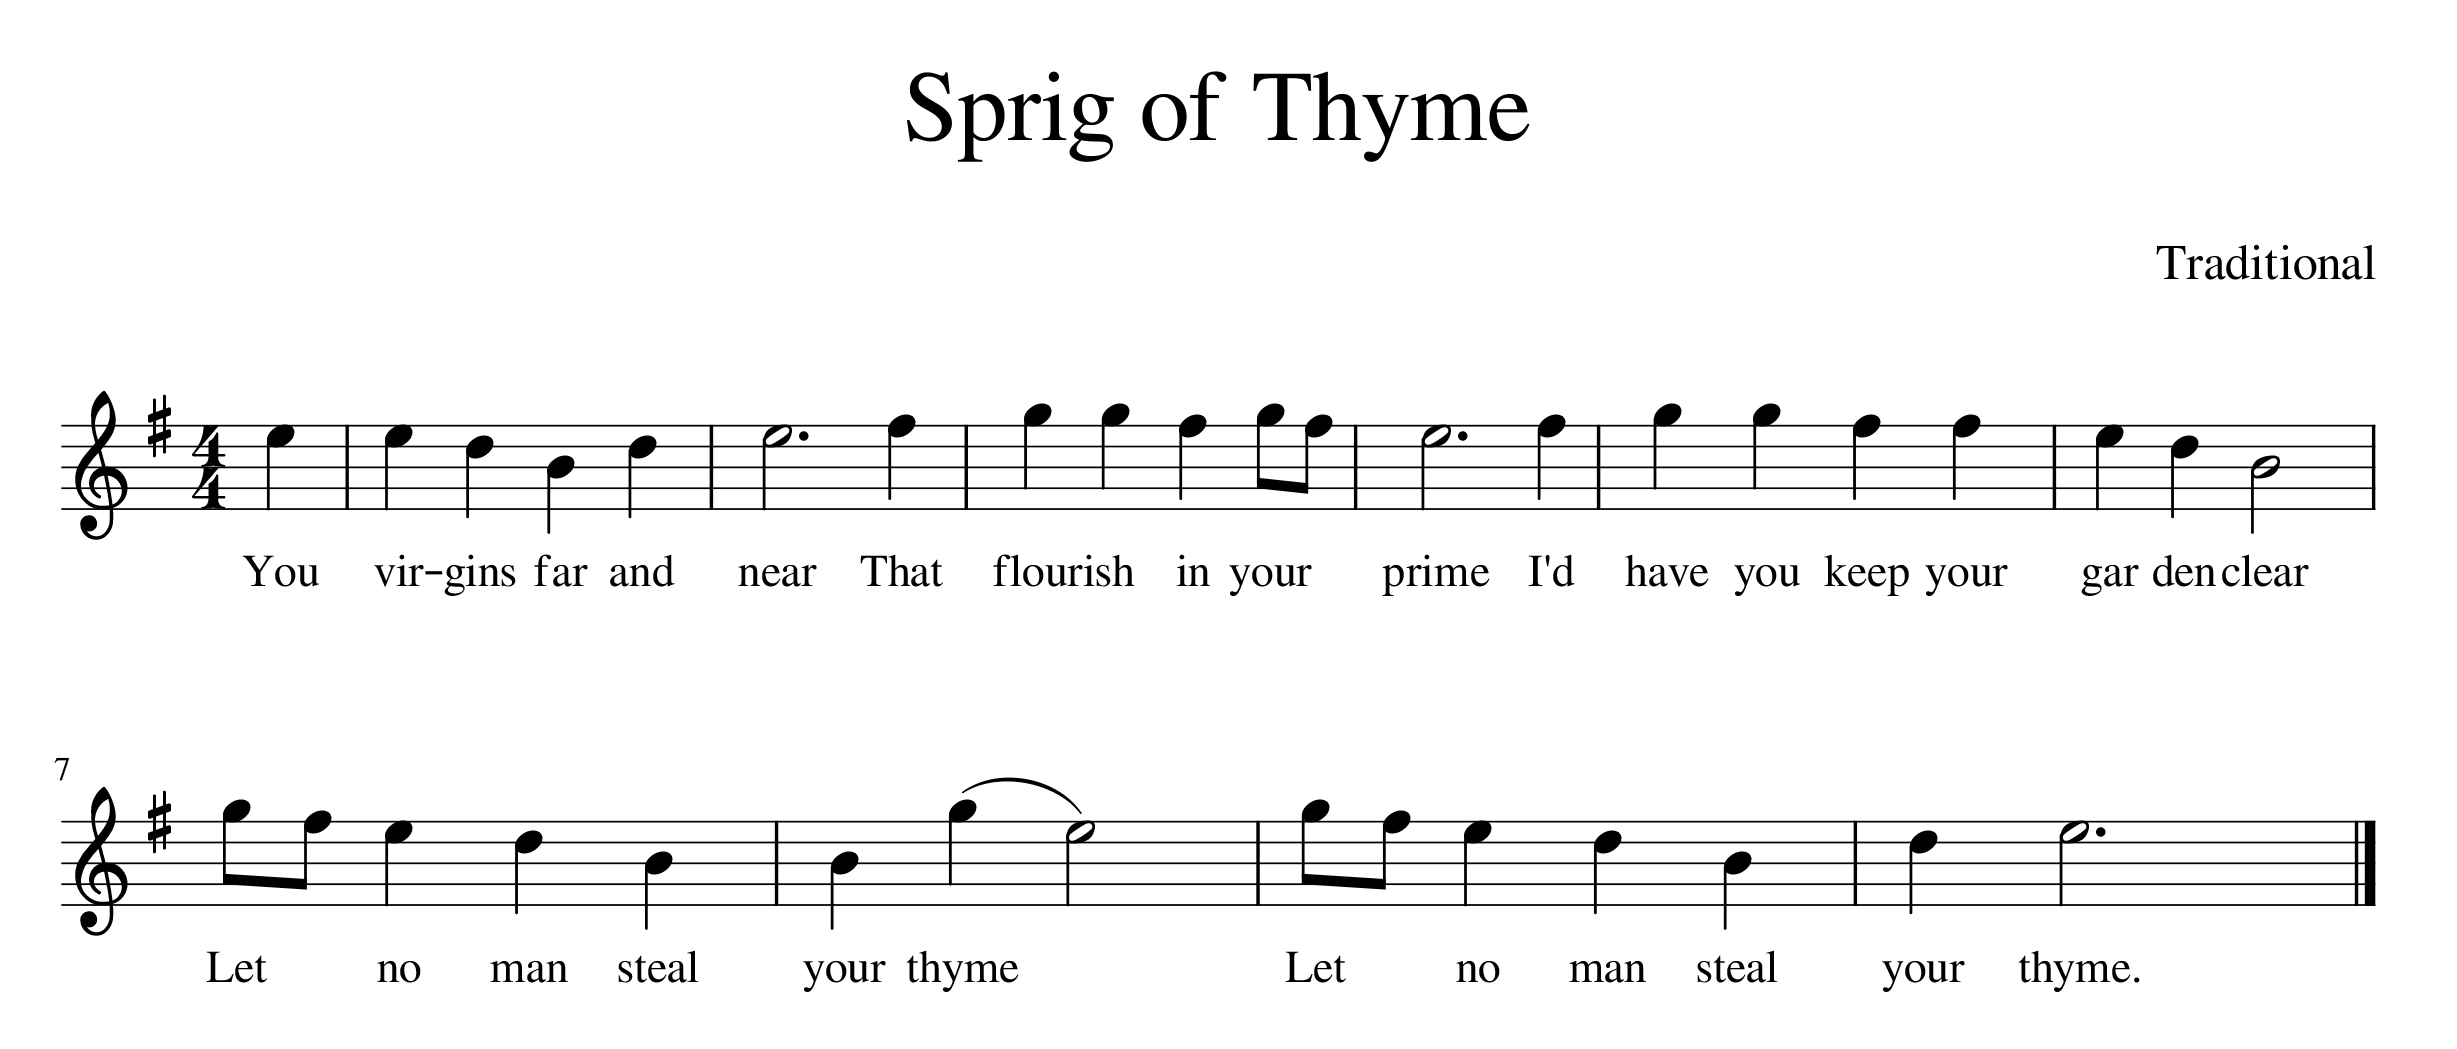 """Sprig of Thyme"" sheet music"